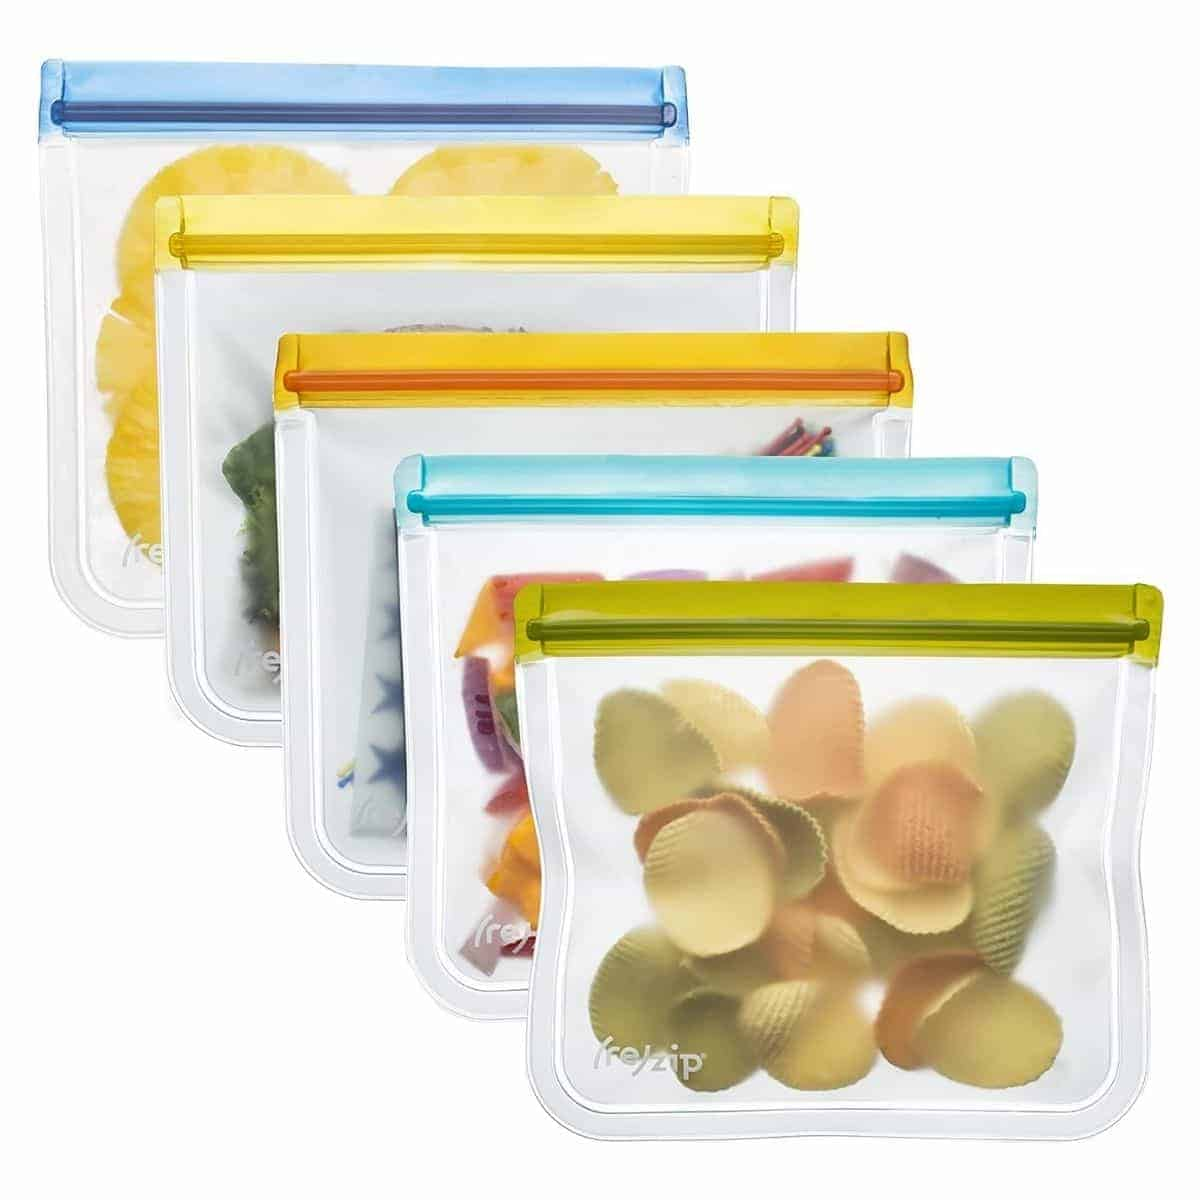 Five multi-colored reusable lunch bags.